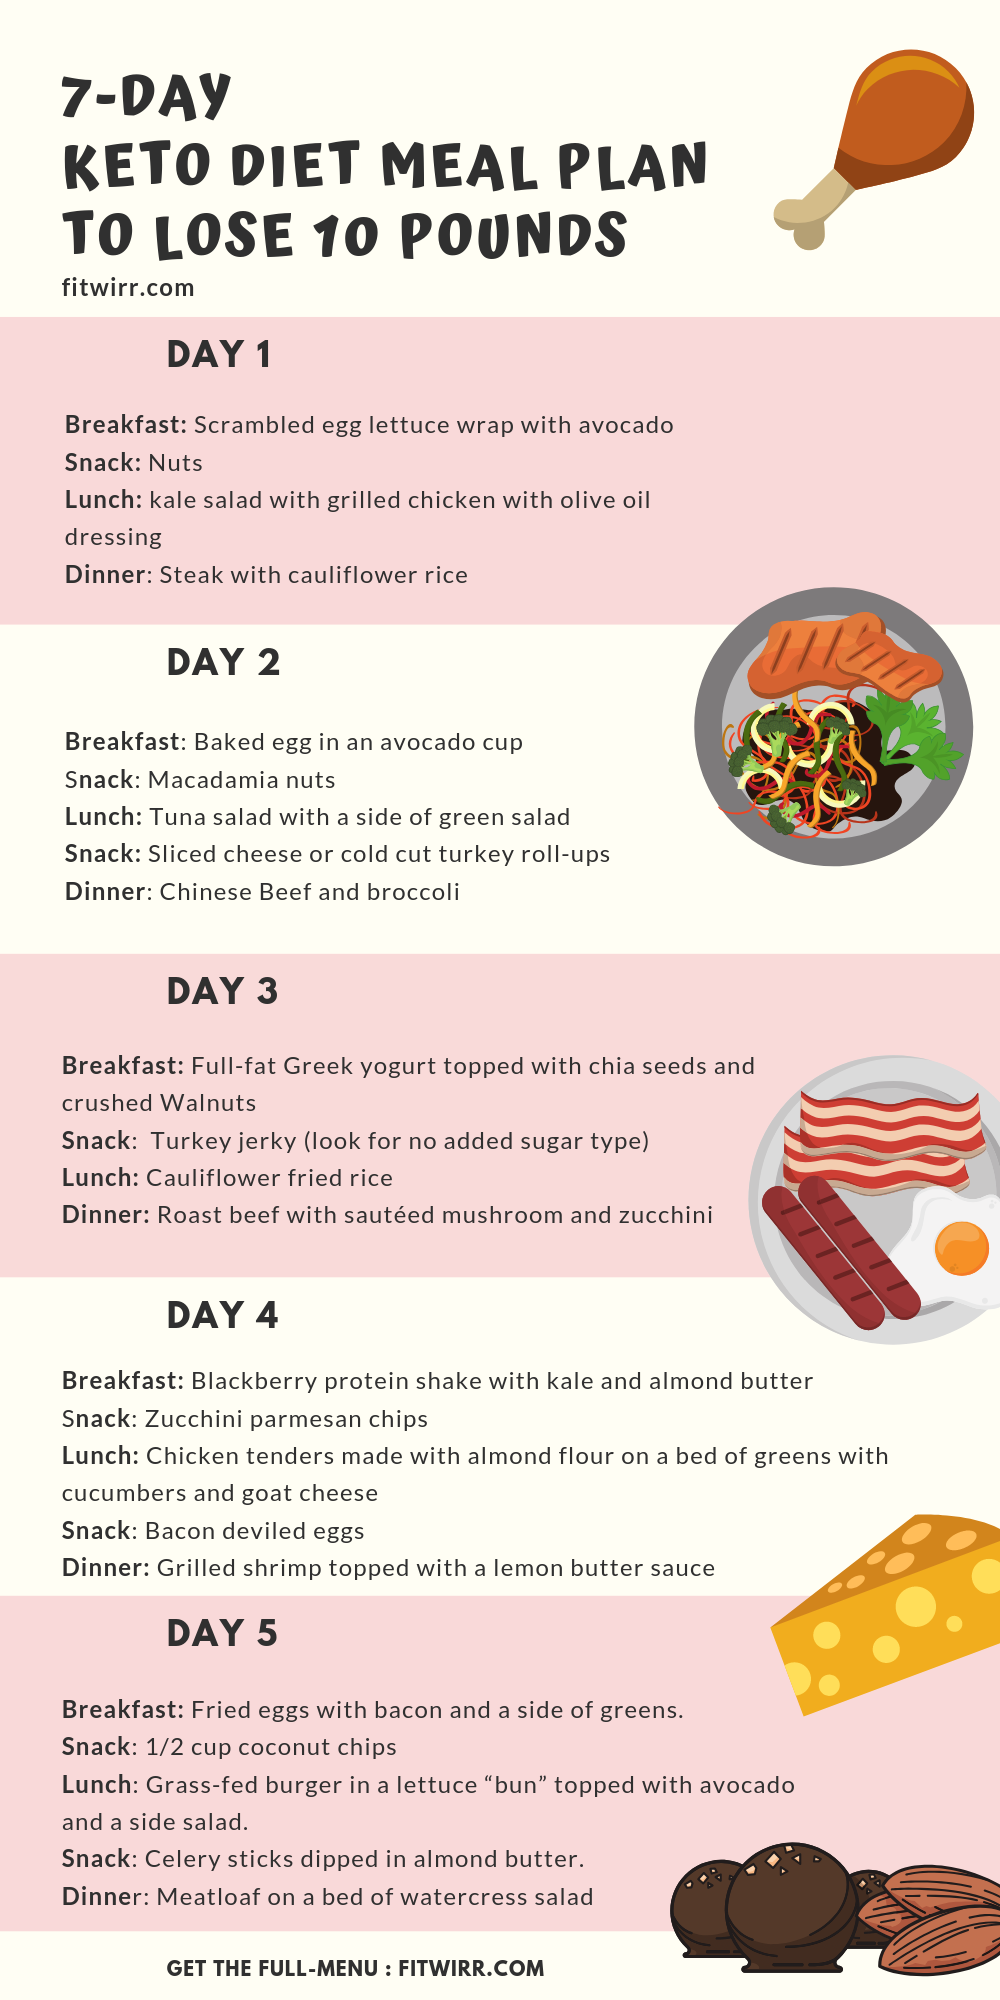 7 Day Meal Plan To Lose 10 Lbs On Keto It S An Easy To Follow 1 Week Ketogenic Or Keto Diet Meal P Ketogenic Diet Meal Plan Keto Diet Menu Keto Diet Food List